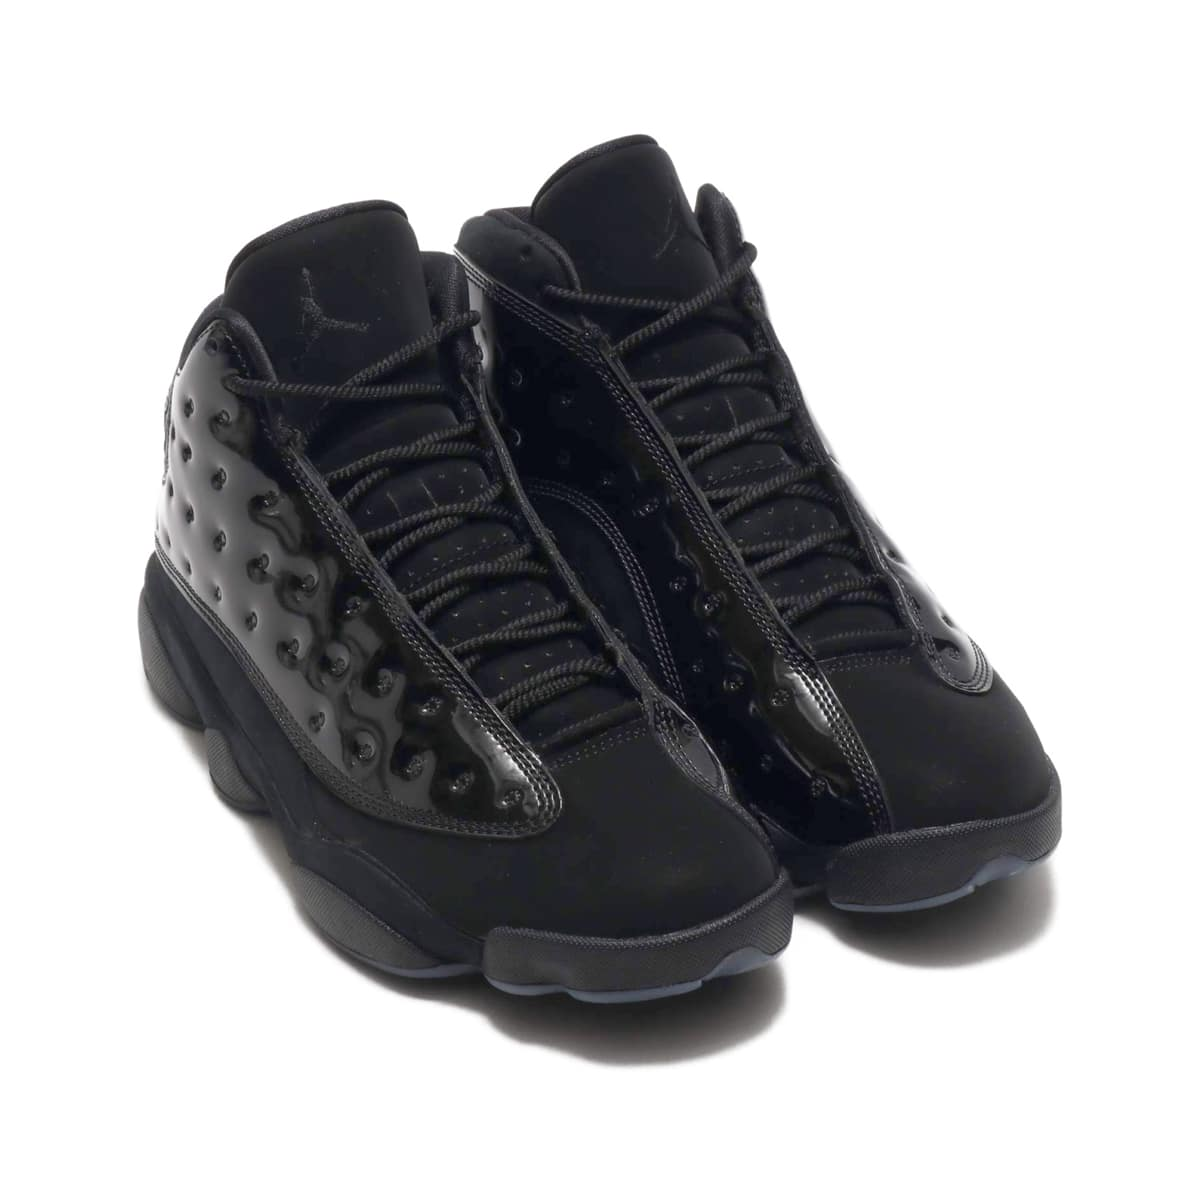 NIKE AIR JORDAN 13 RETRO BLACK/BLACK 19SU-S_photo_large